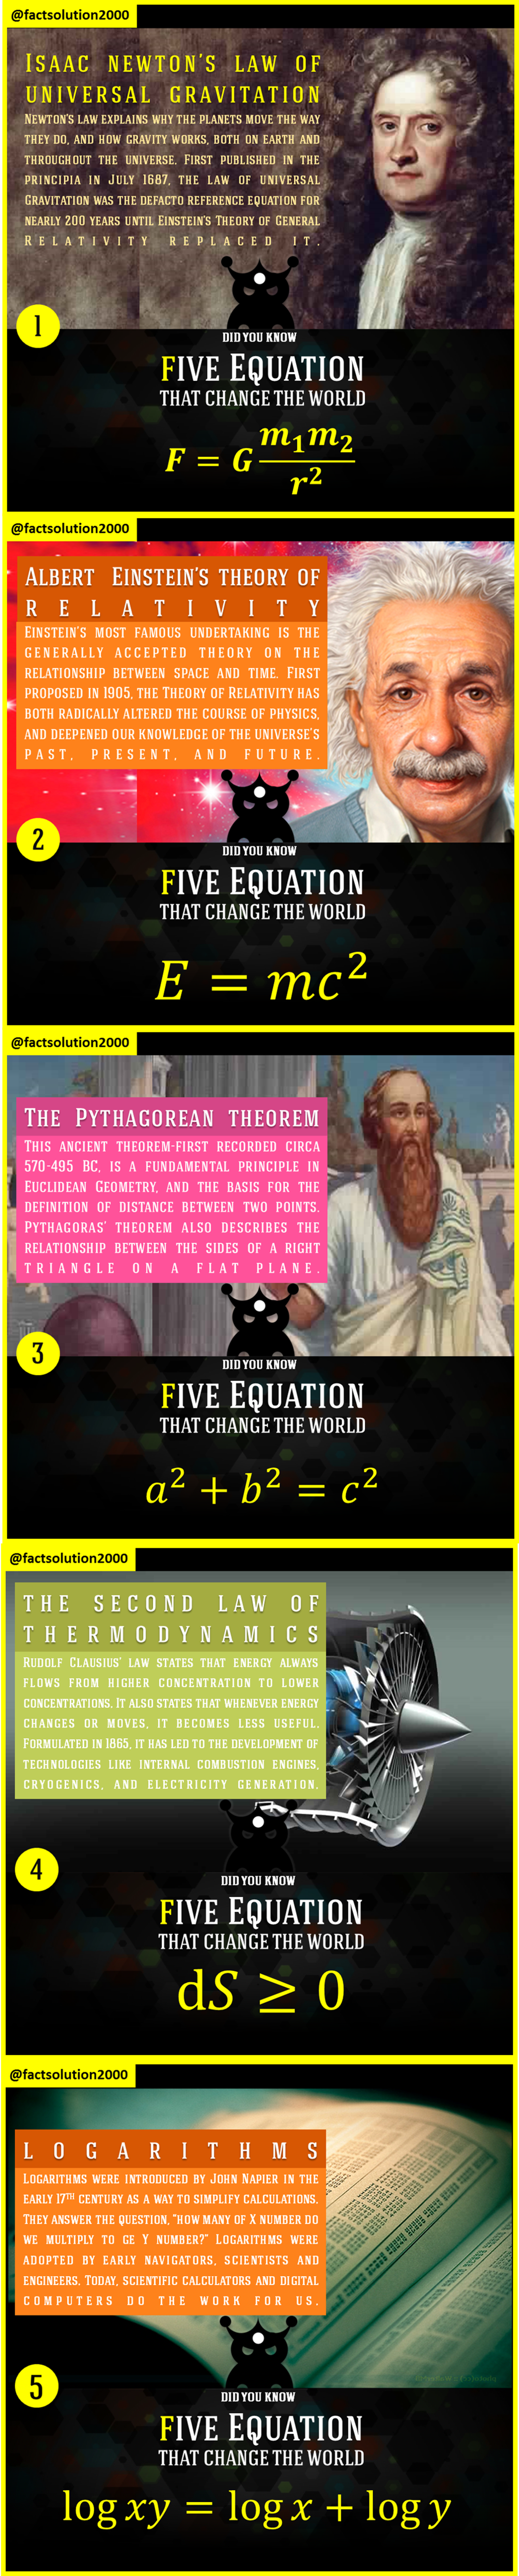 List of 5 Equations that actually change or shape our